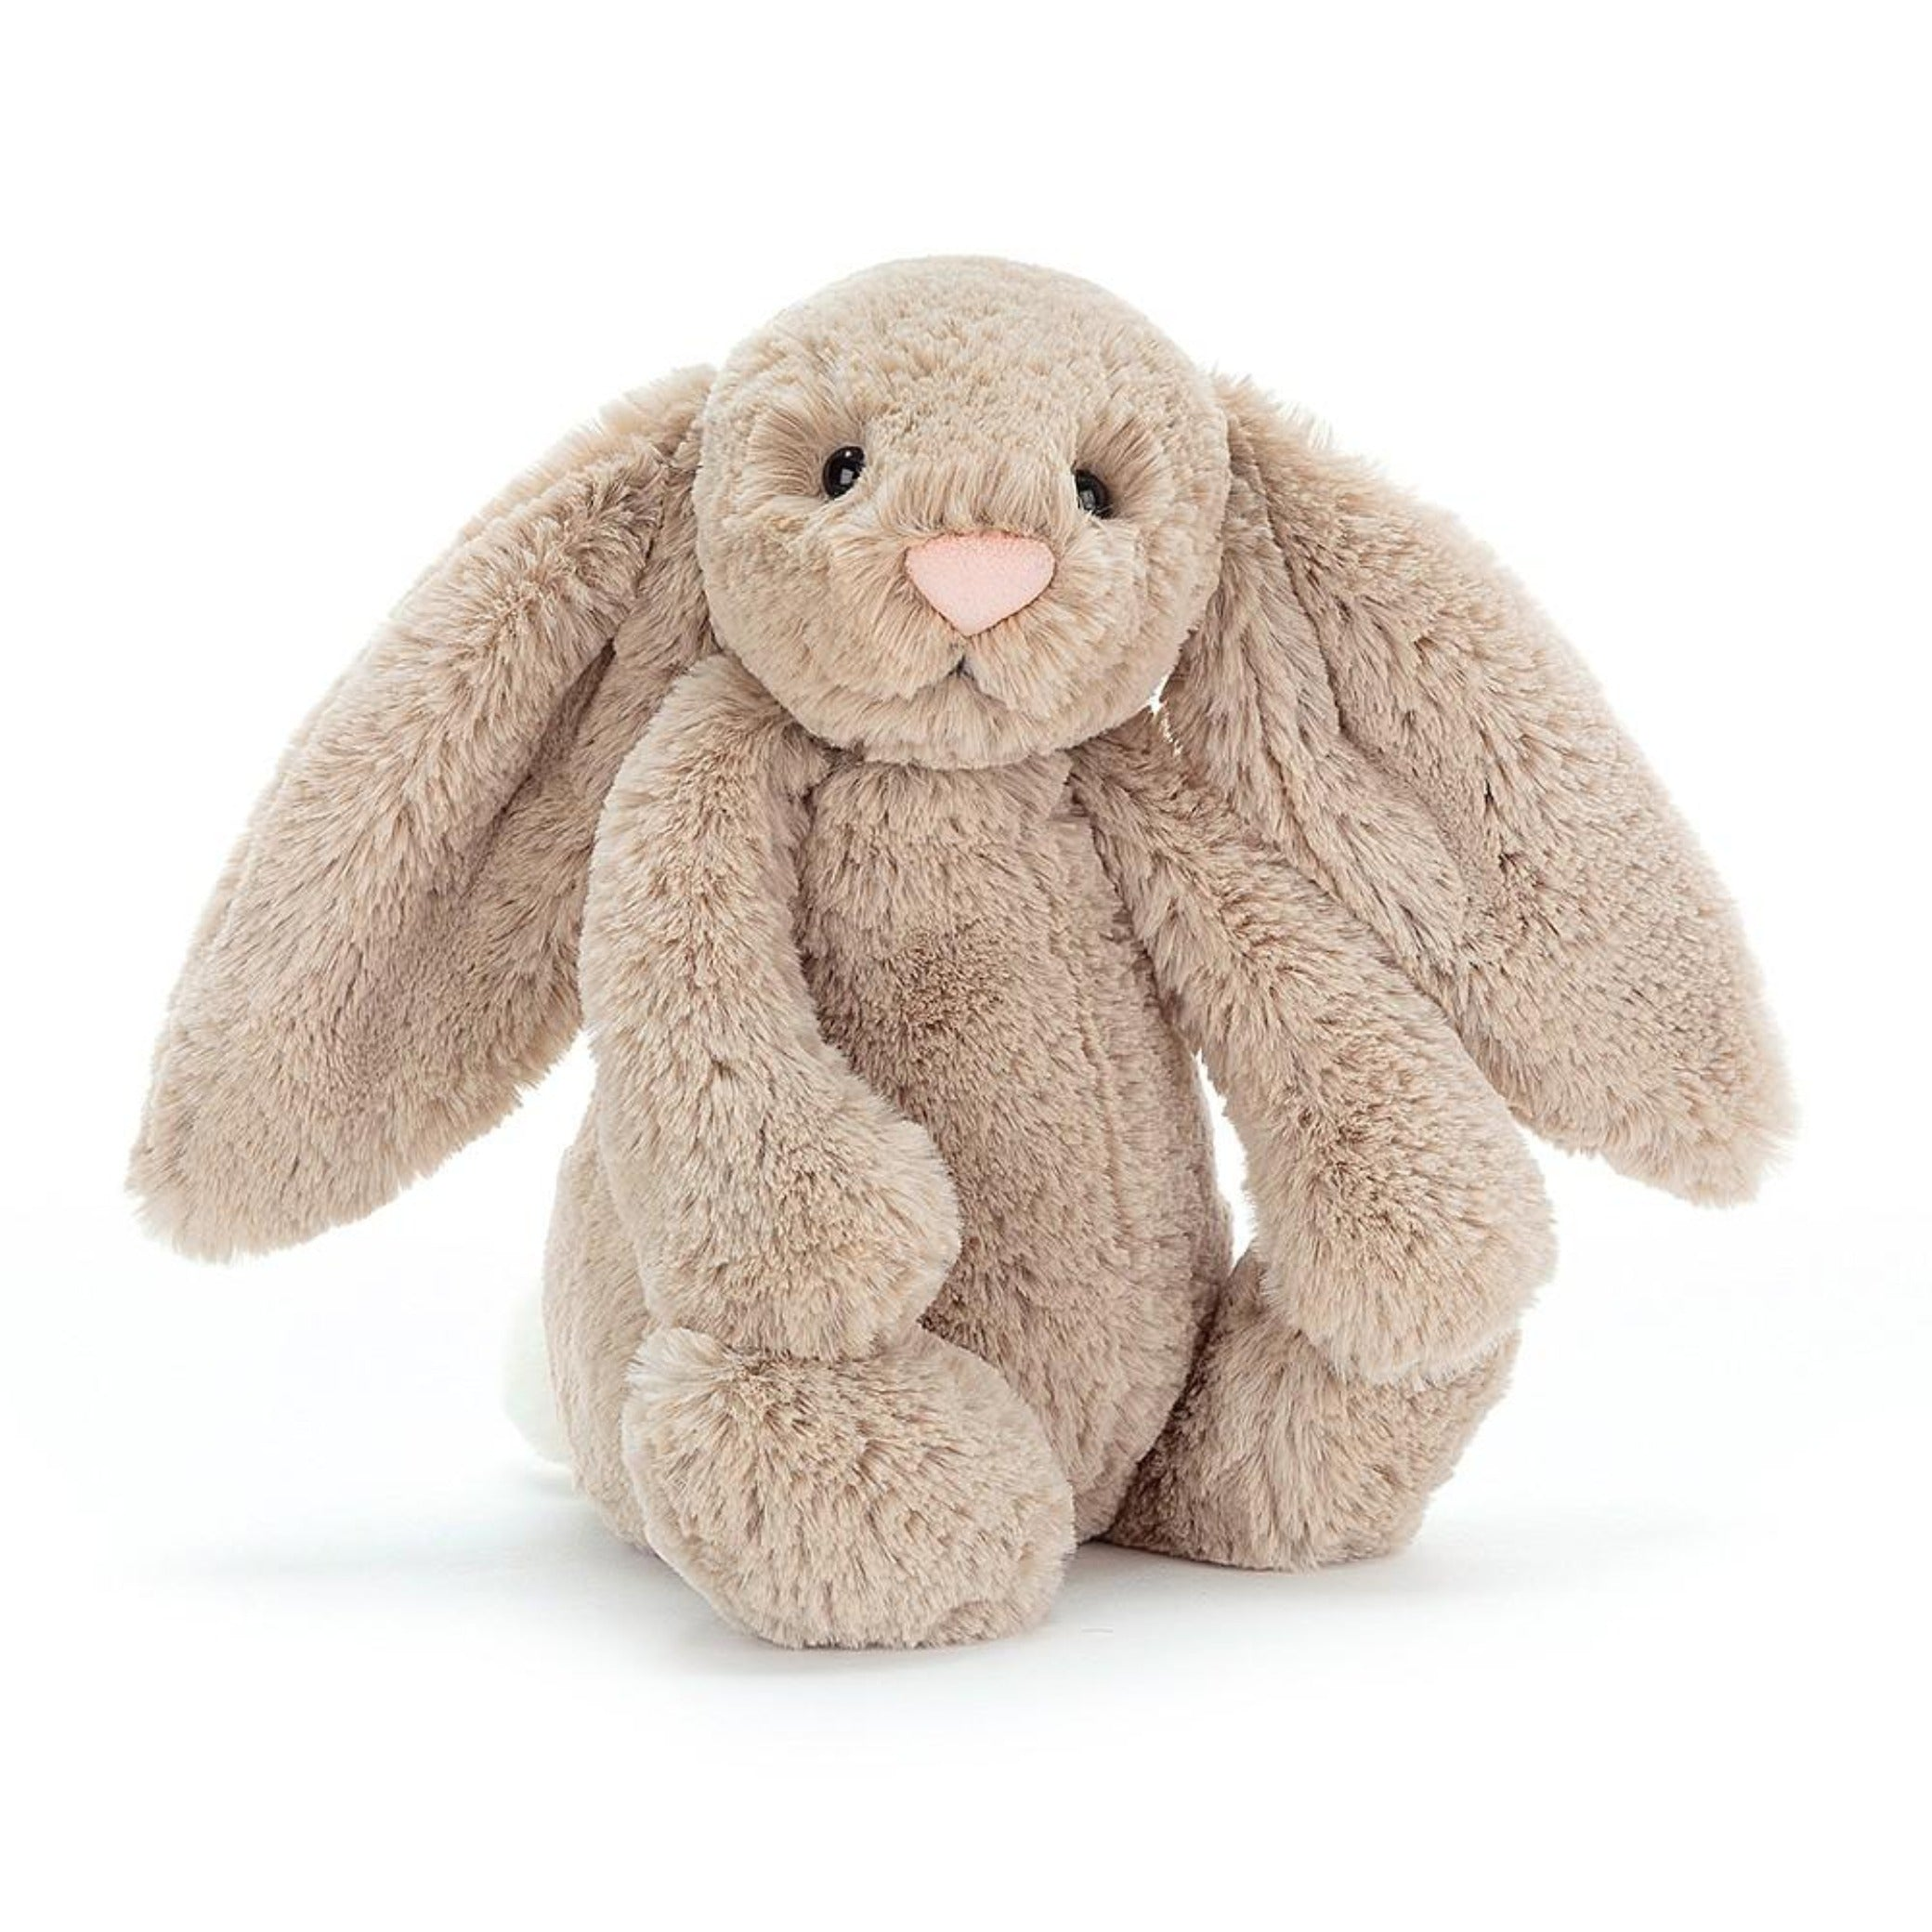 JellyCat plush beige medium bunny toy